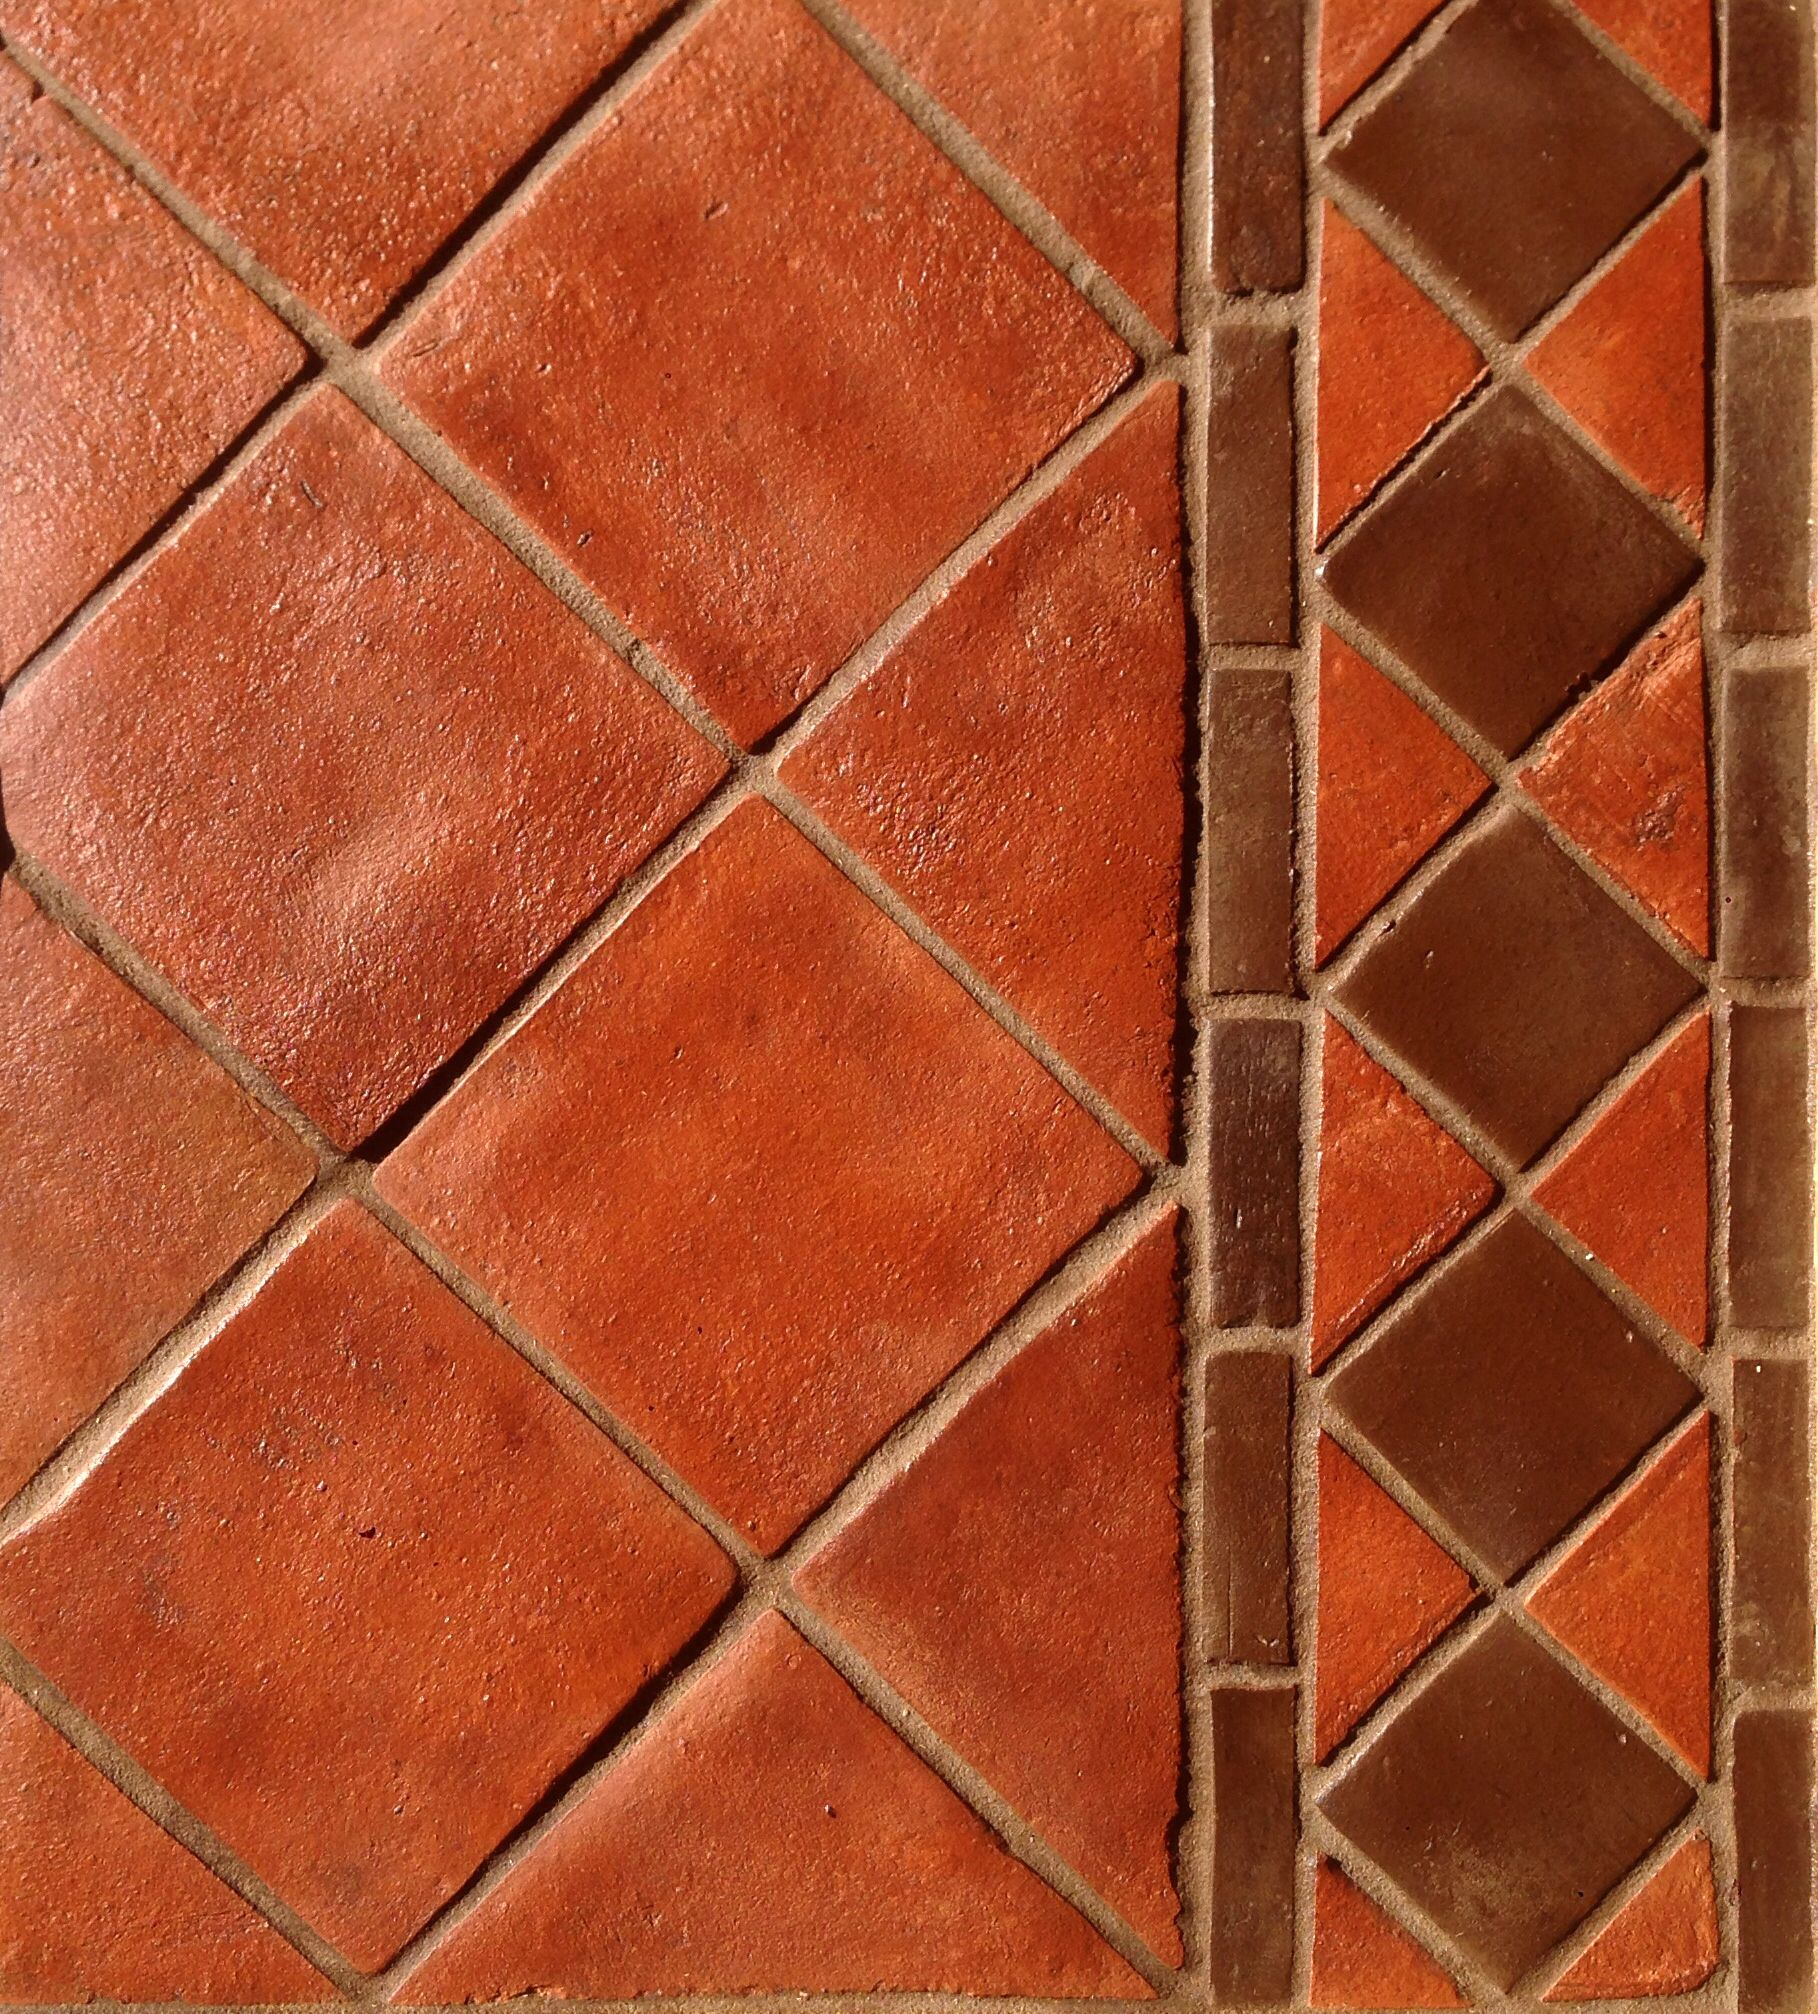 Handmade terracotta floor tiles from spicer tiles terracotta handmade terracotta floor tiles from spicer tiles dailygadgetfo Choice Image